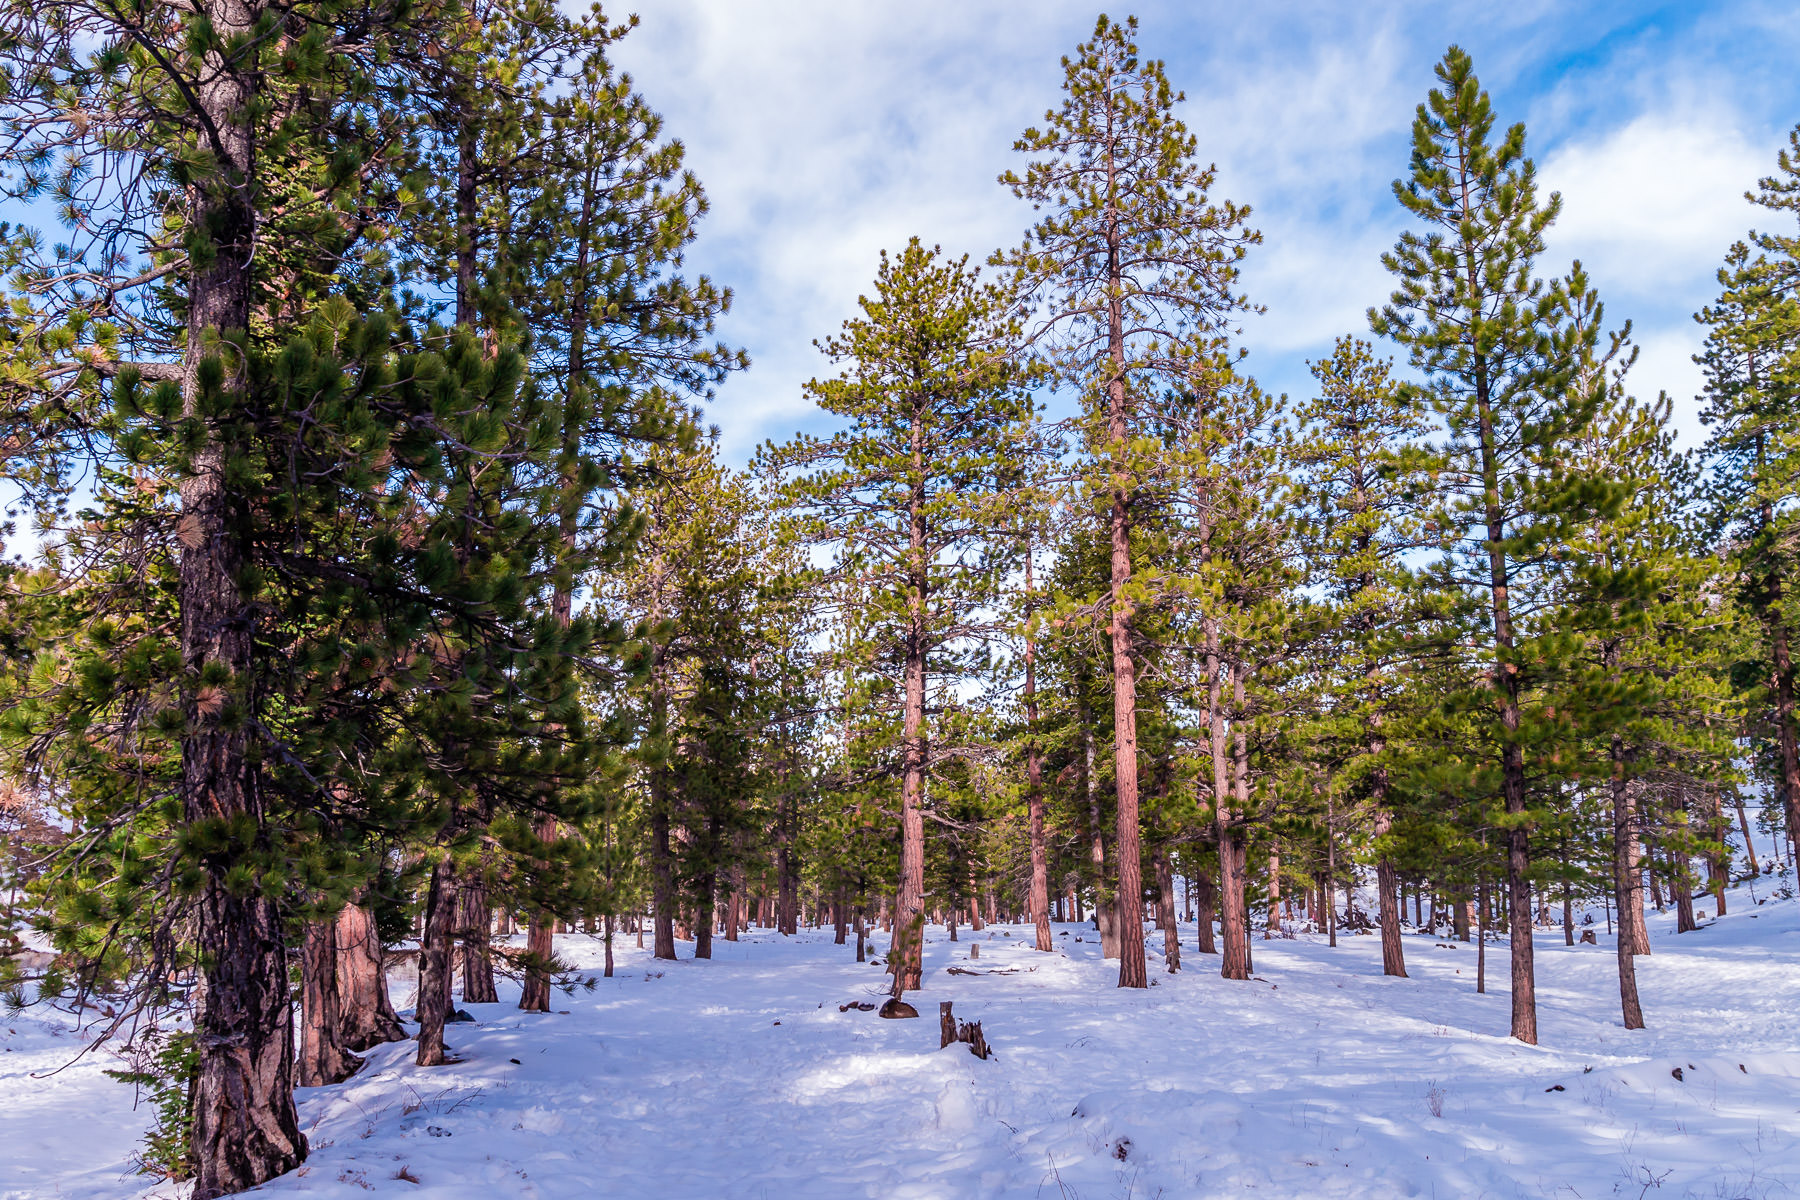 The snow-covered, forested landscape of Nevada's Mount Charleston in winter.